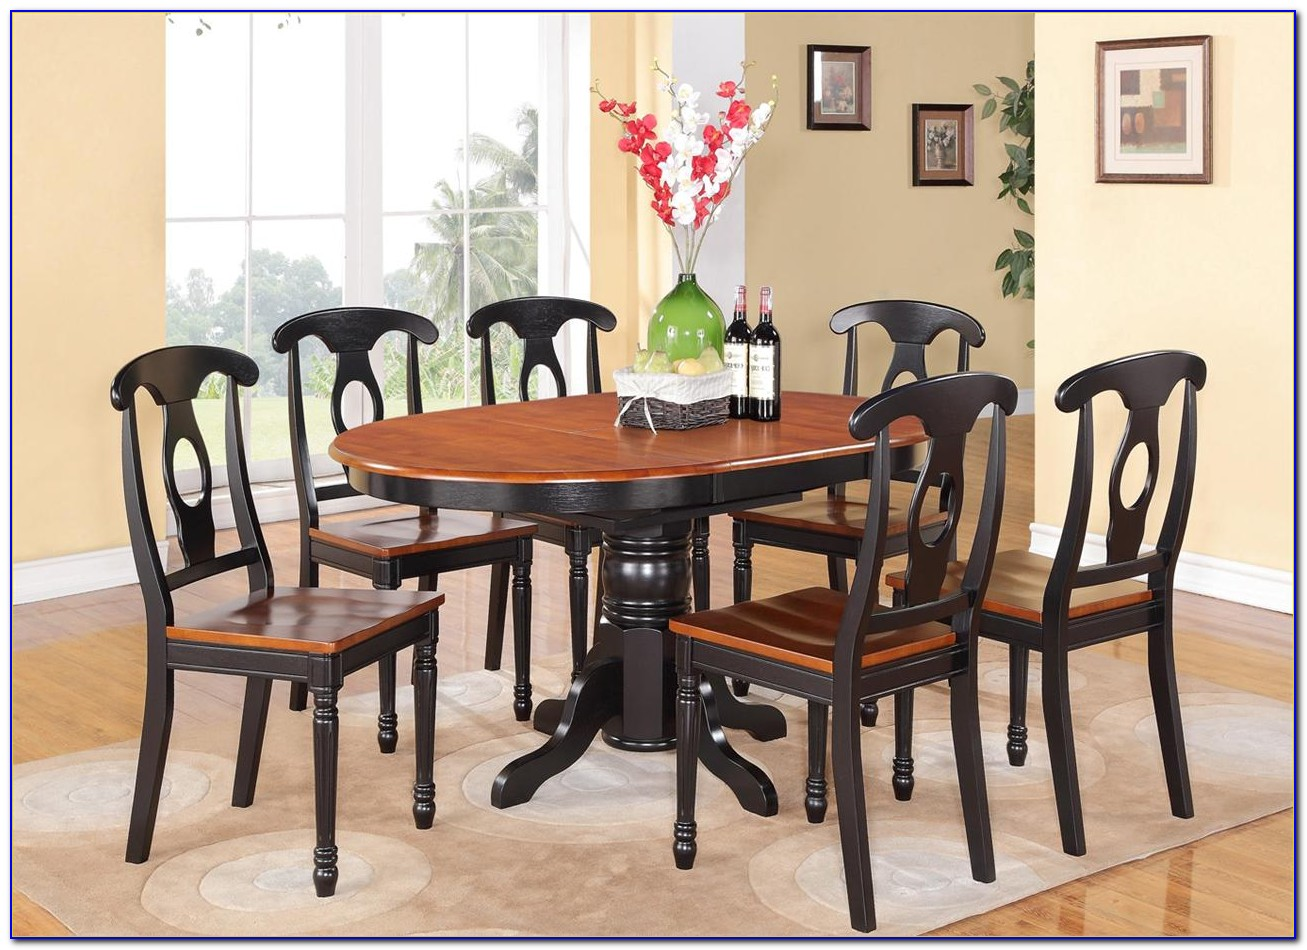 Wicker Chairs For Kitchen Table